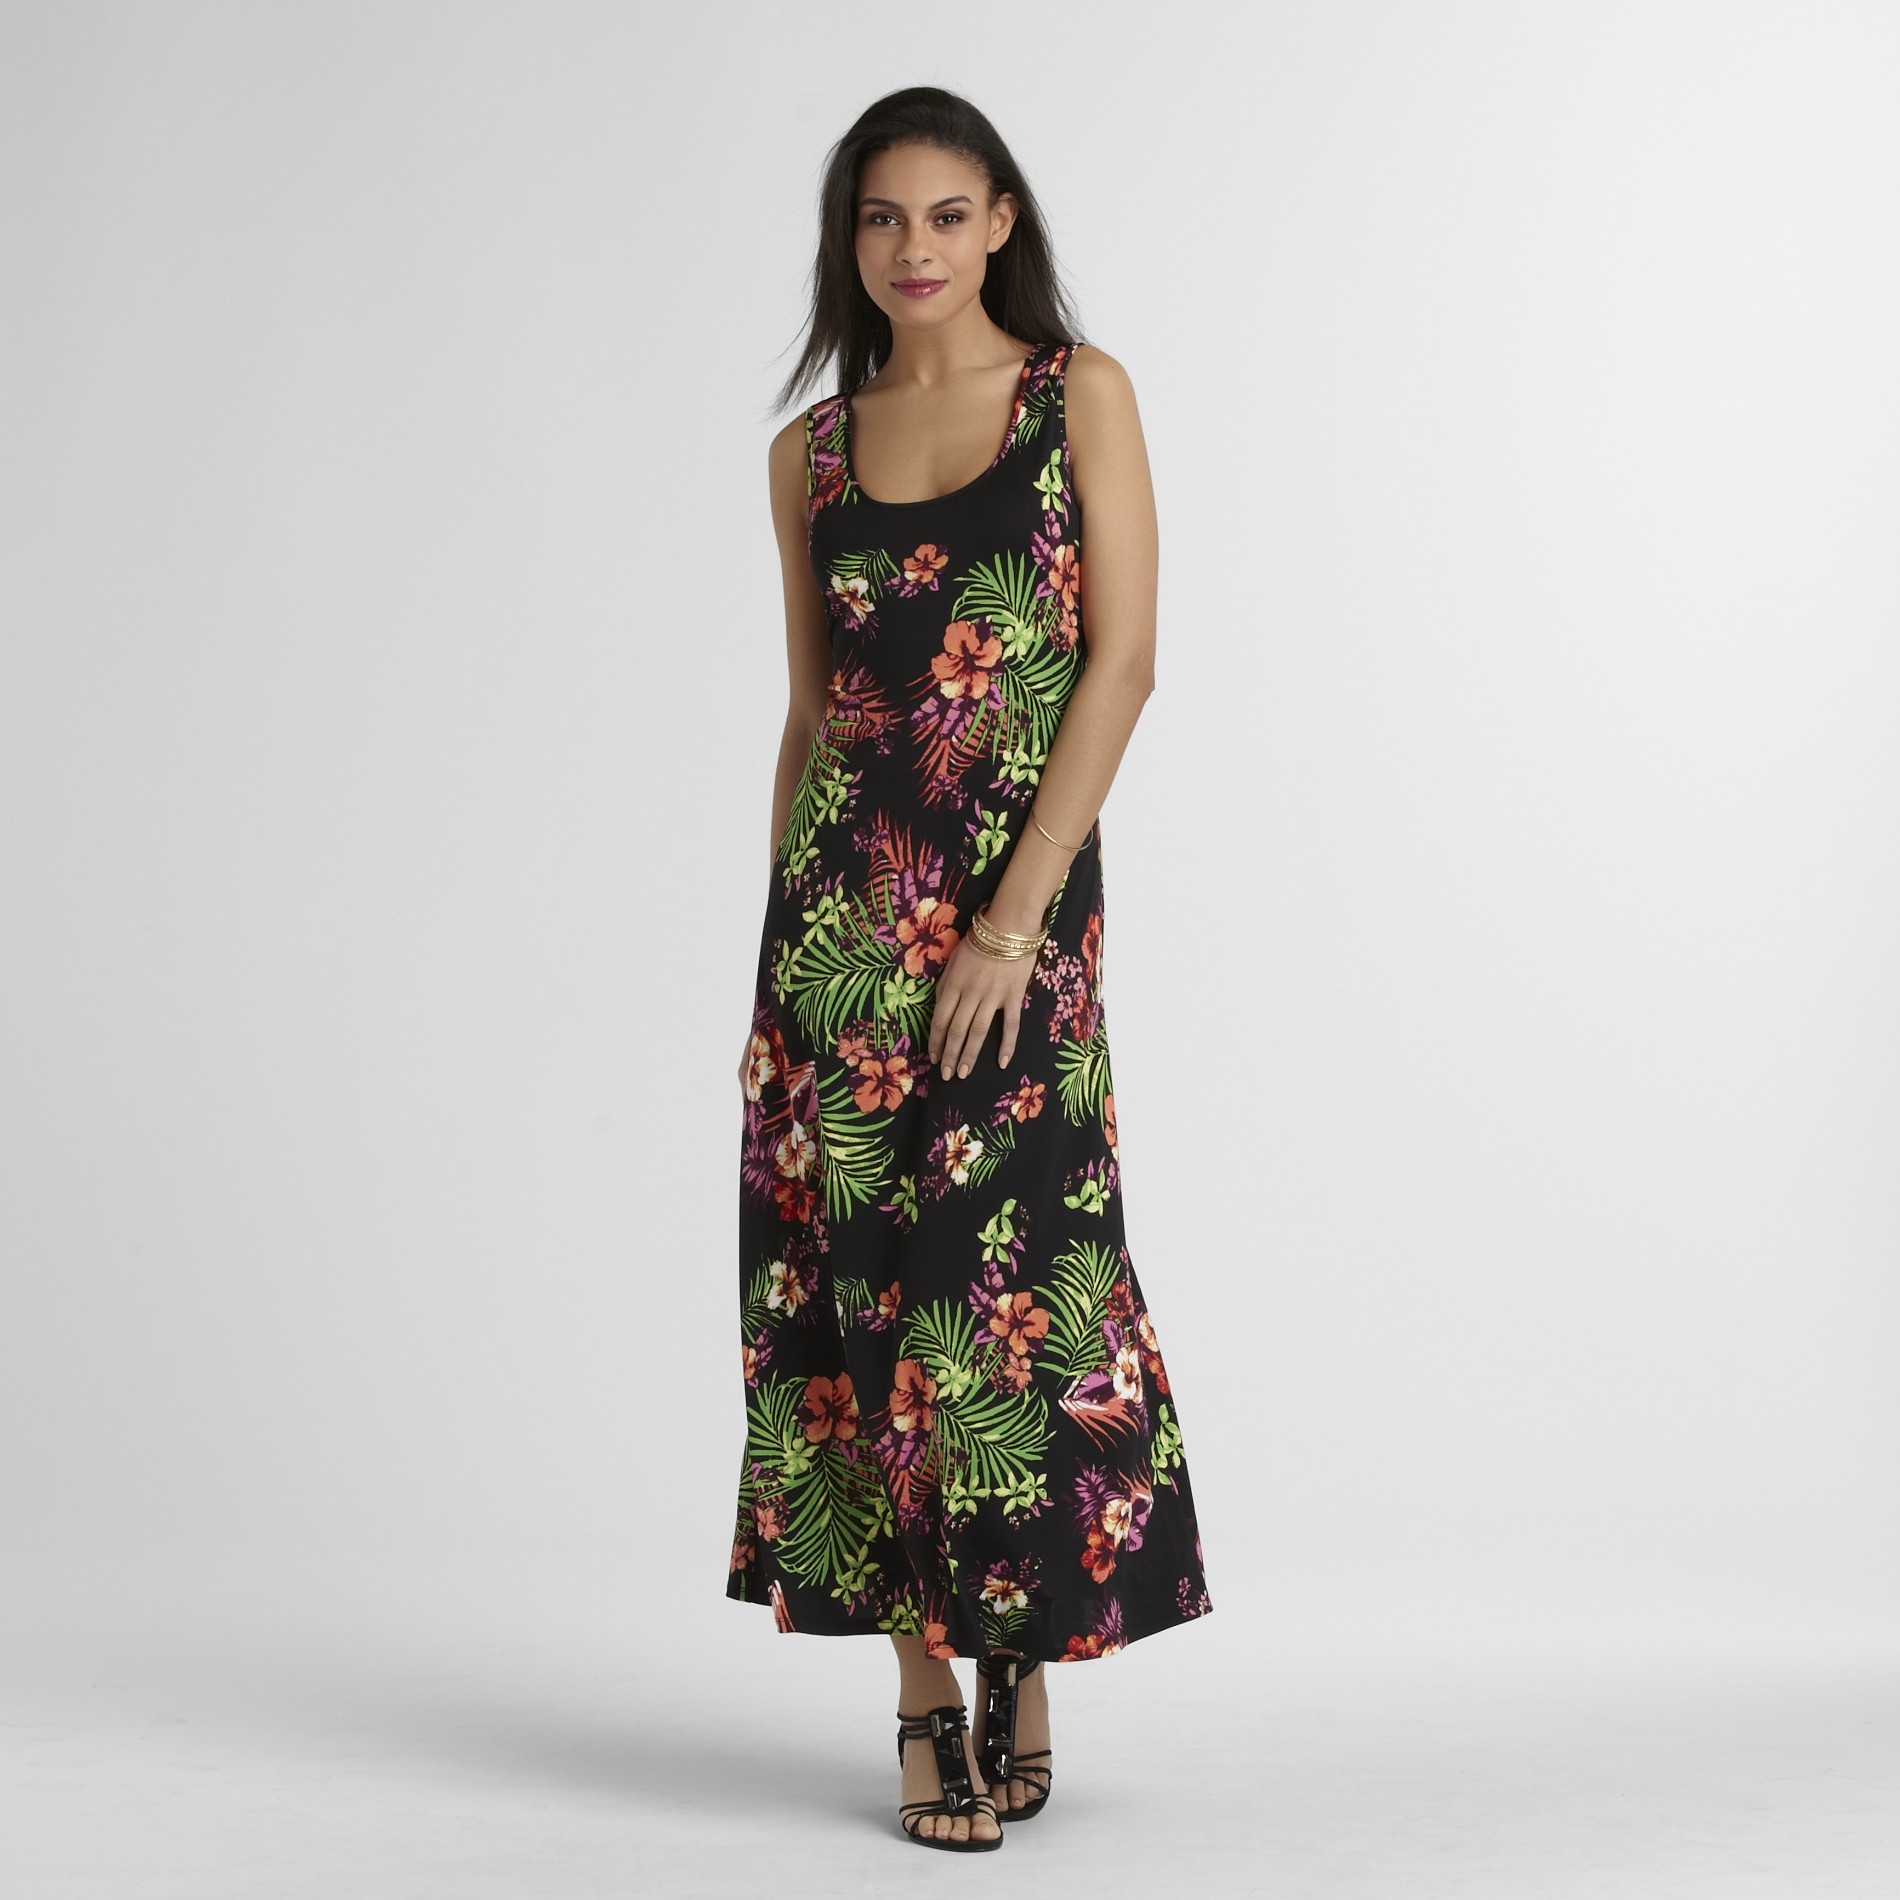 JBS Women's Maxi Dress - Floral at Sears.com